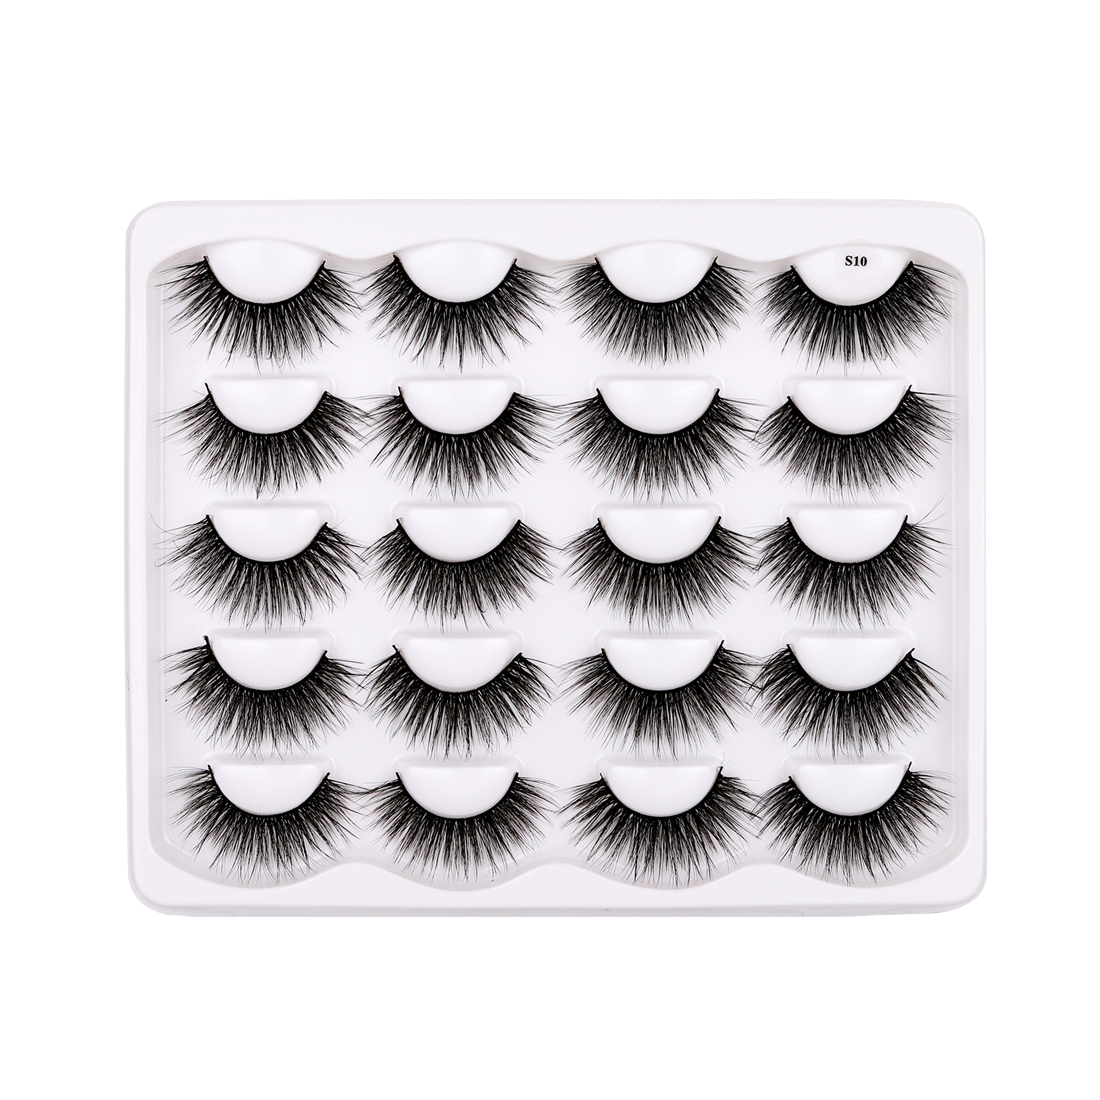 10 Pairs Faux Mink False Eyelashes S10